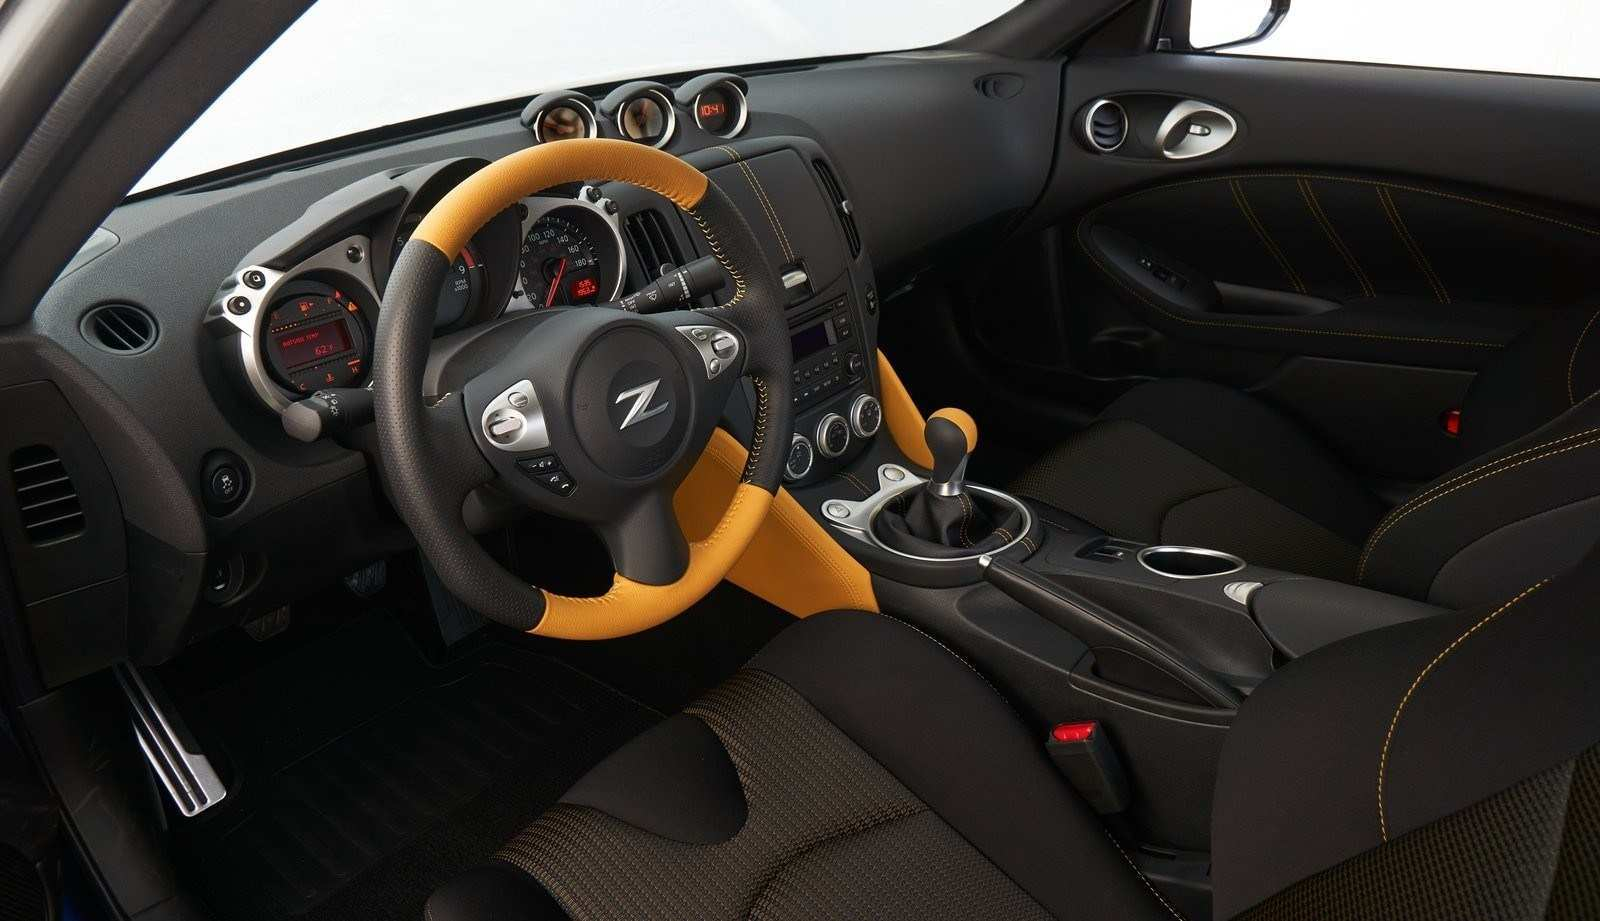 70 The 2019 The Nissan Z35 Review Model